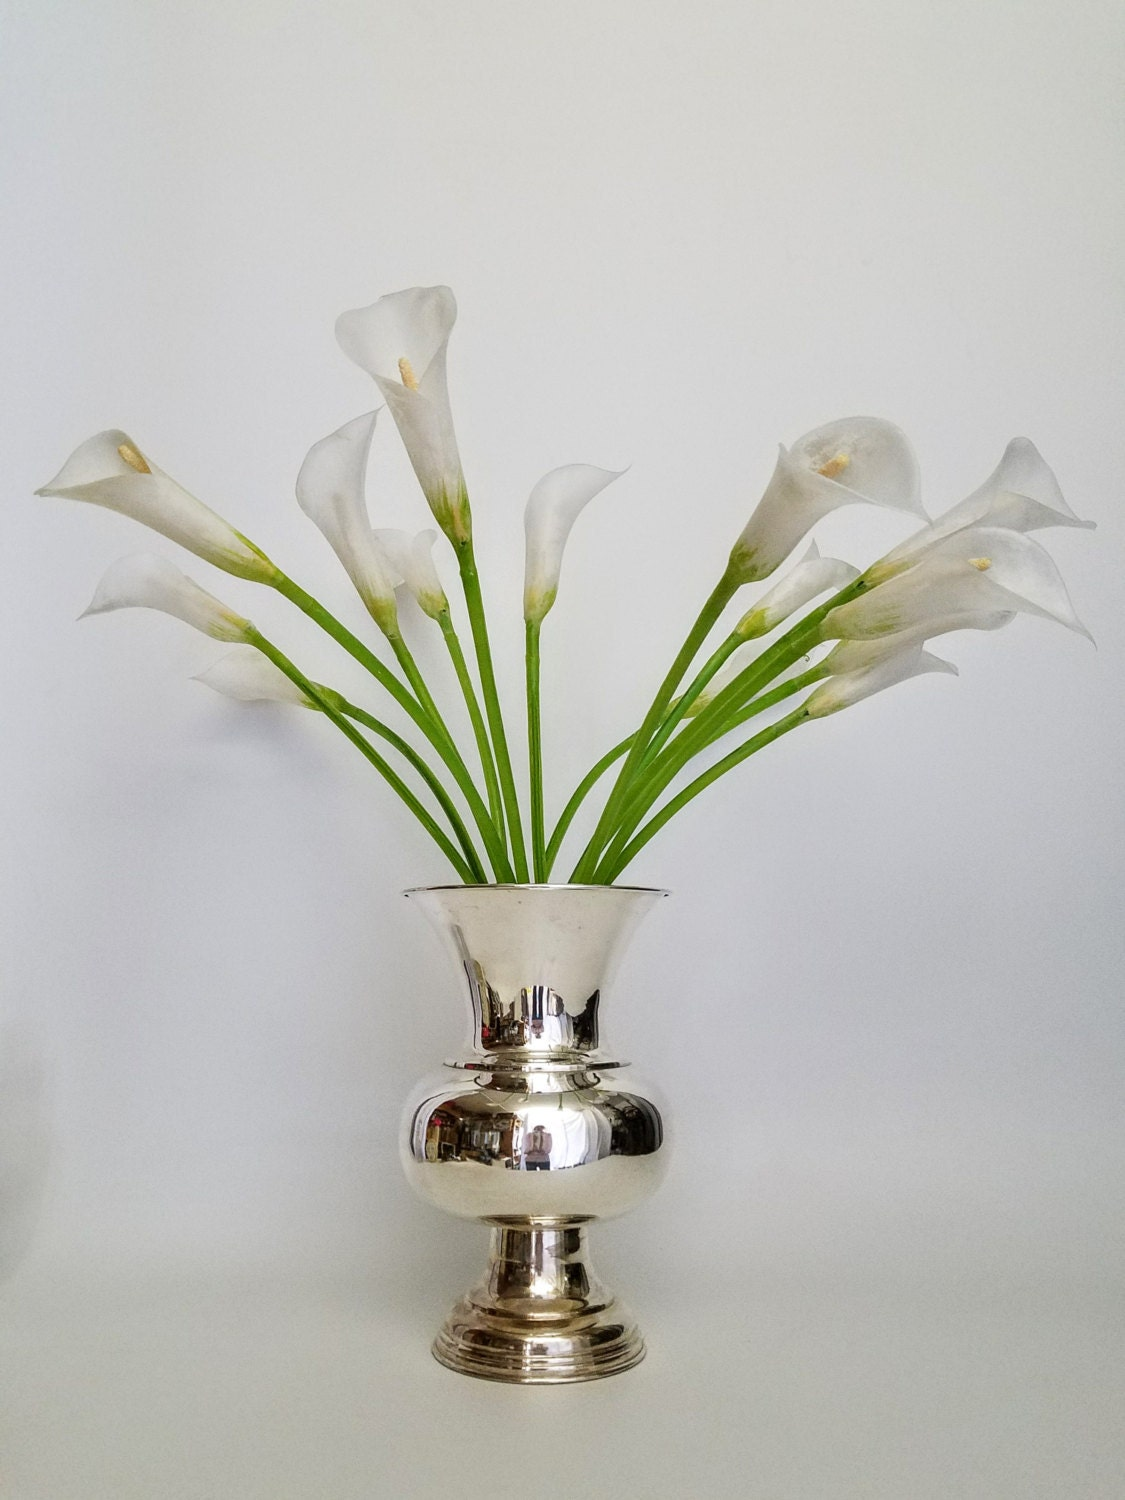 ceramic silver item dimple effect vase interiors from large in baytree undefined